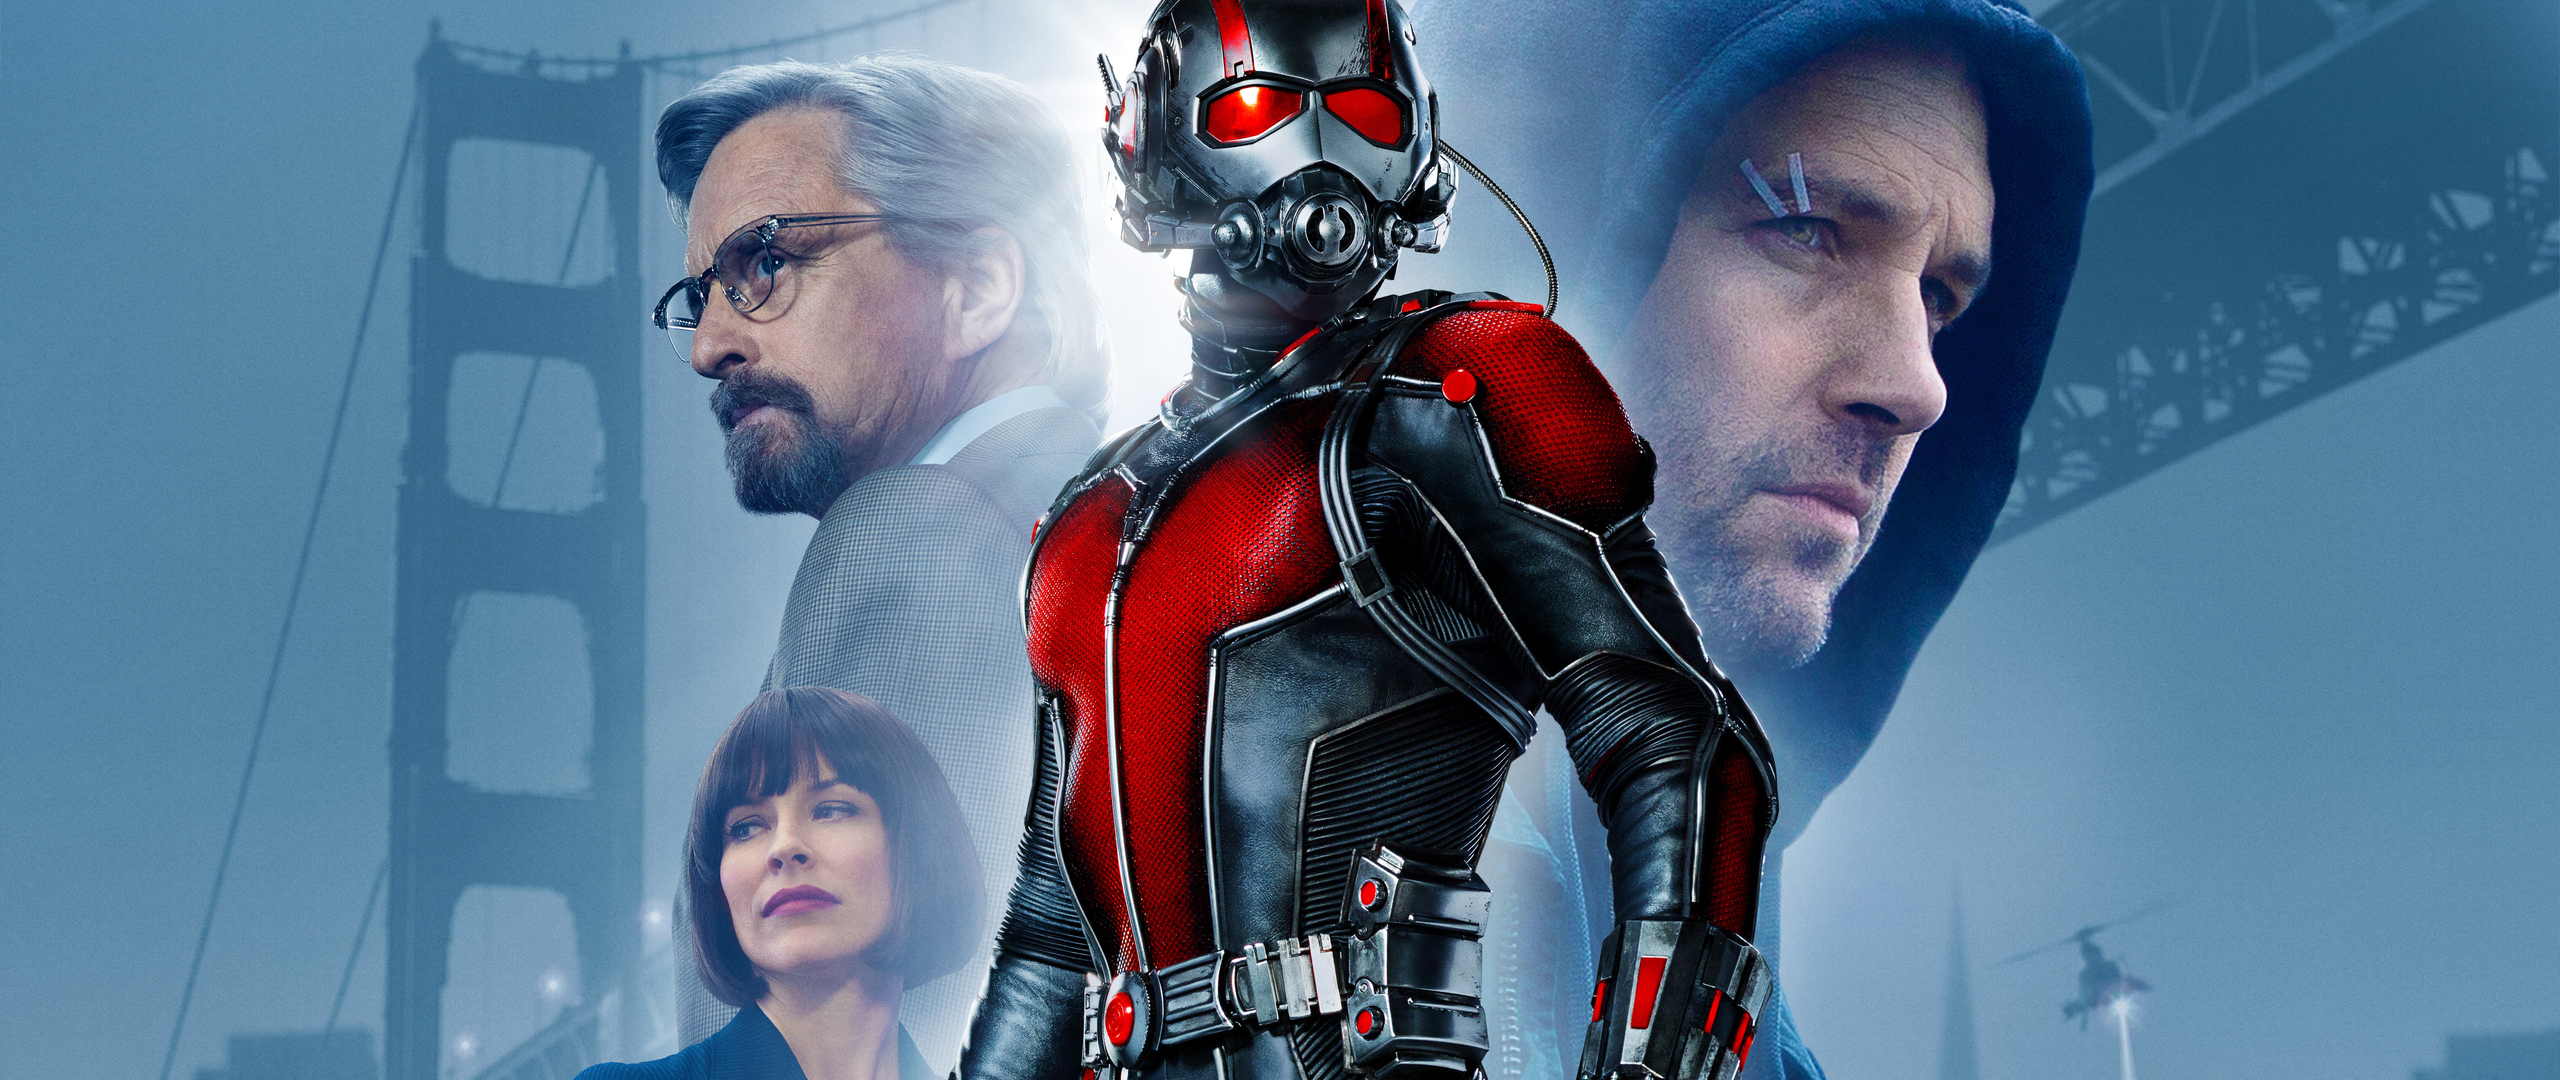 ant-man-movie-5k-nt.jpg